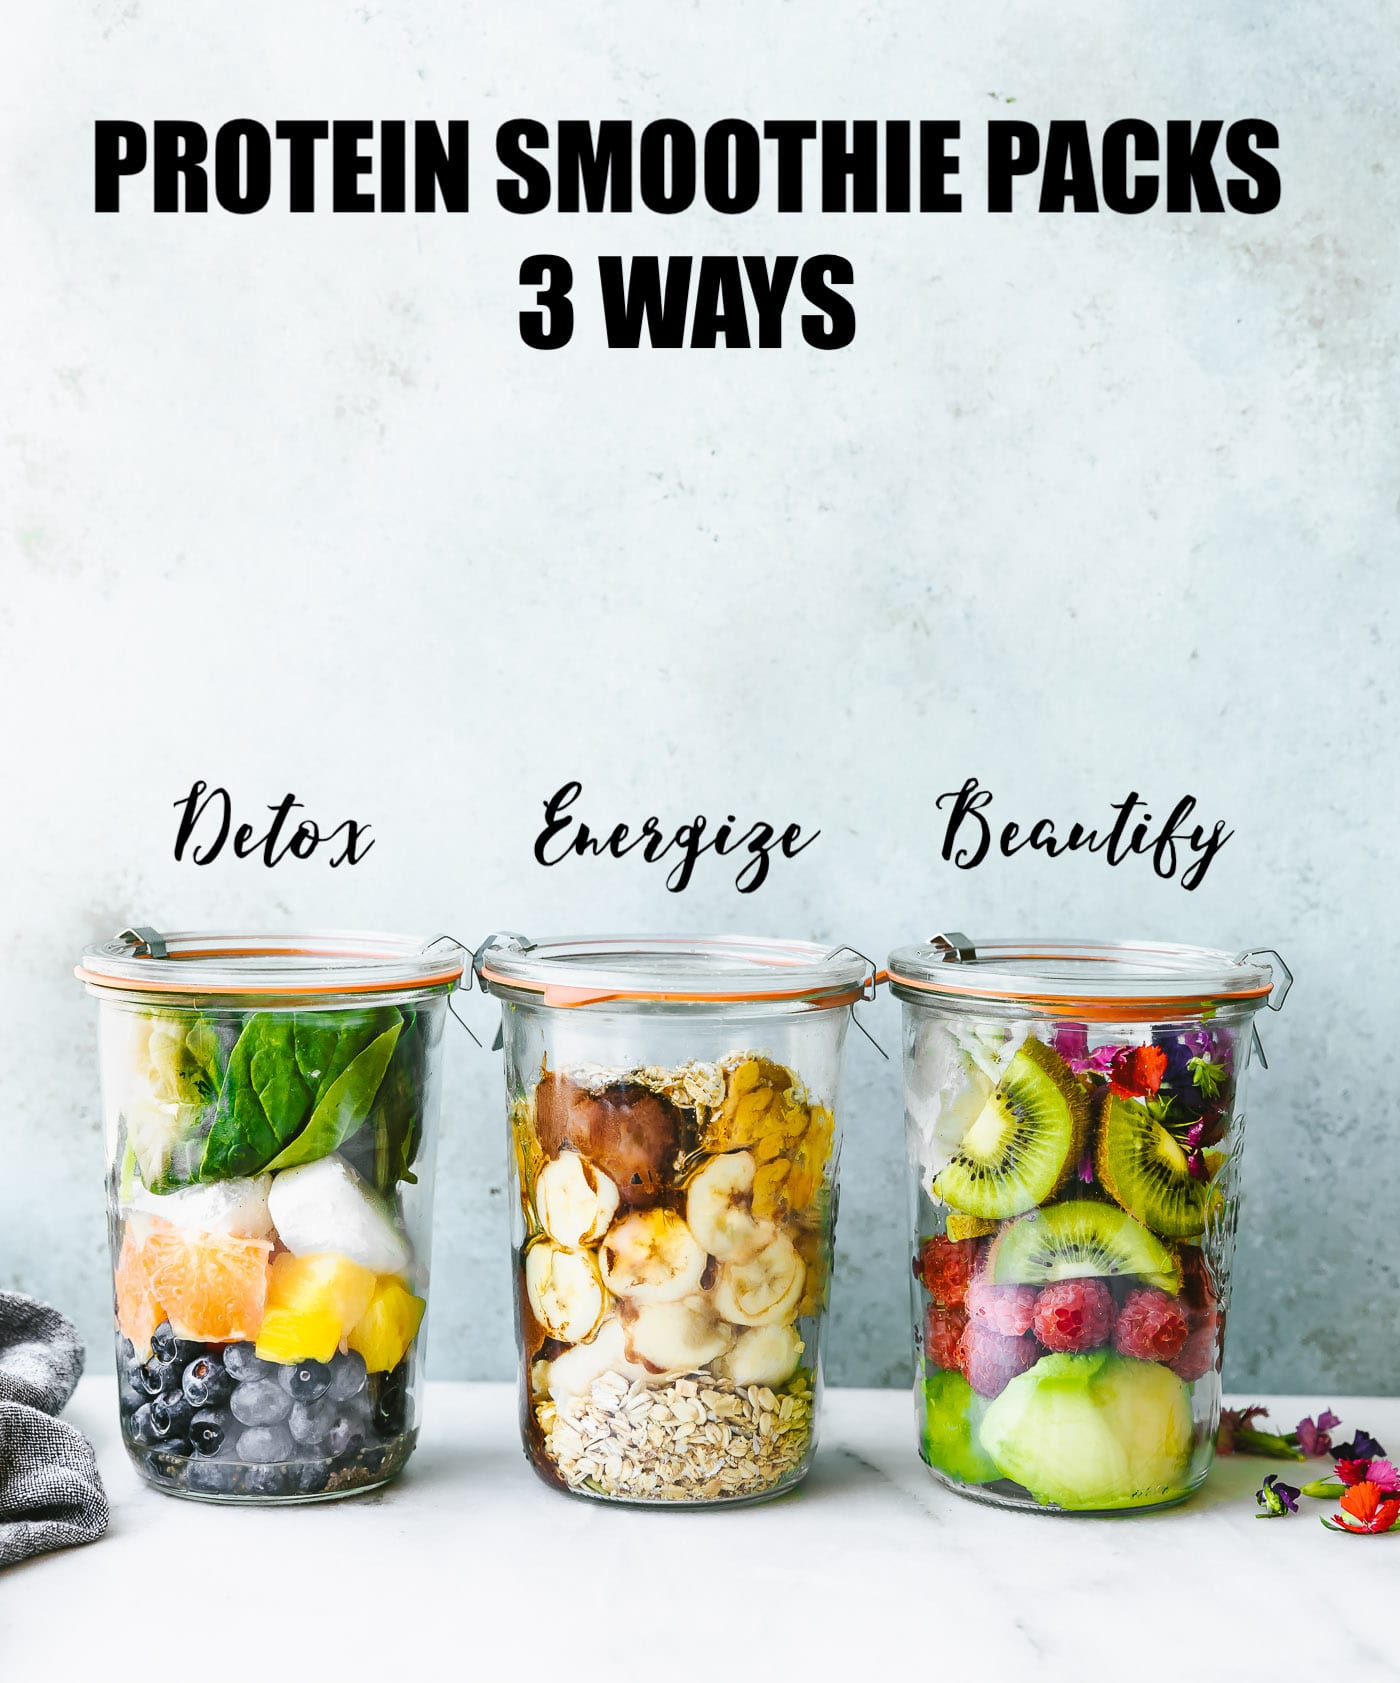 These 3 Make-Ahead Smoothie Packs